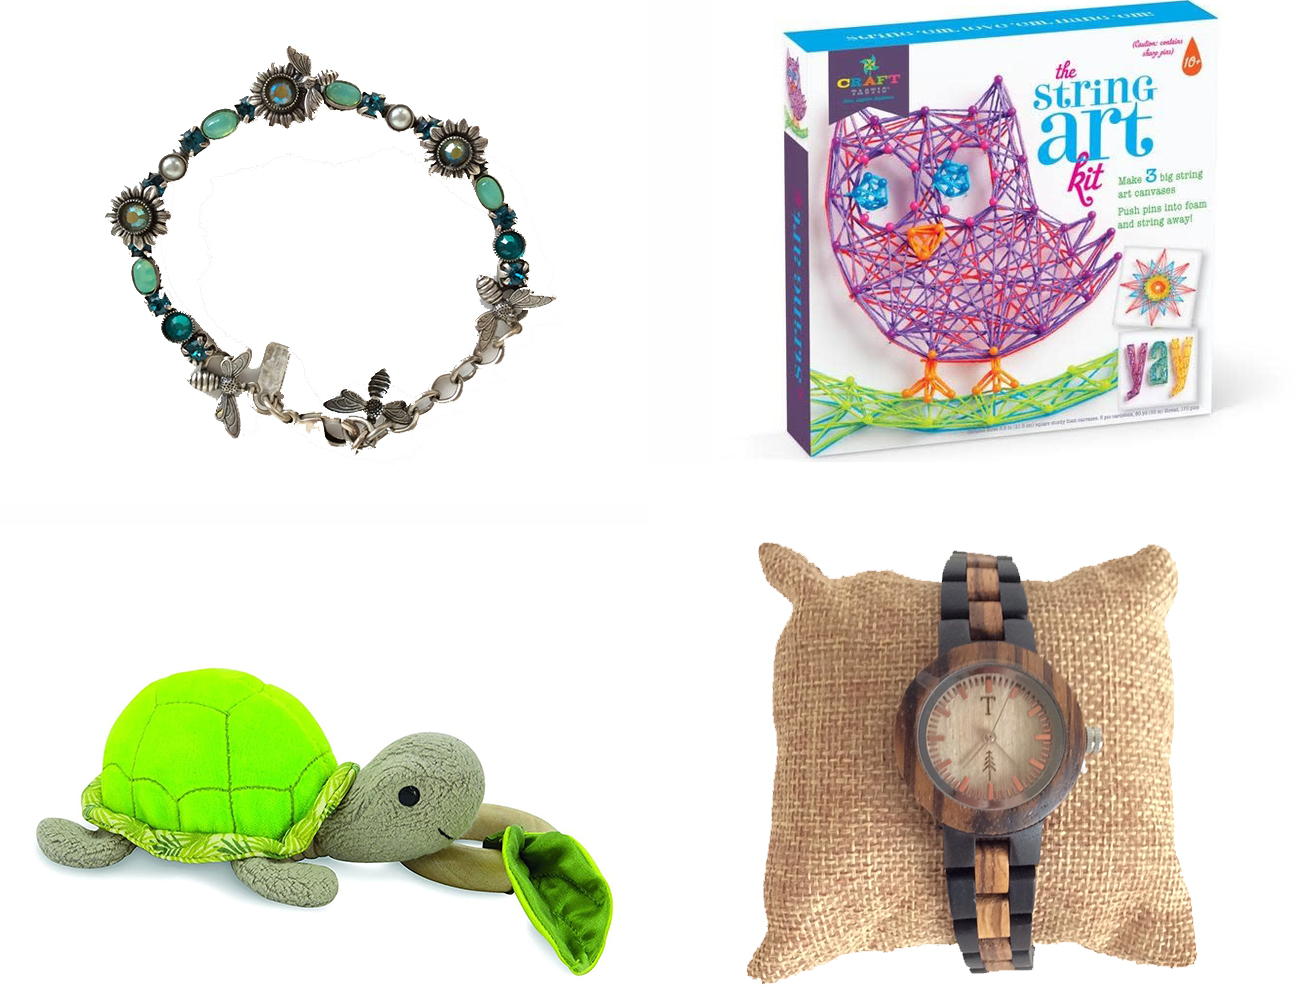 Nature store items